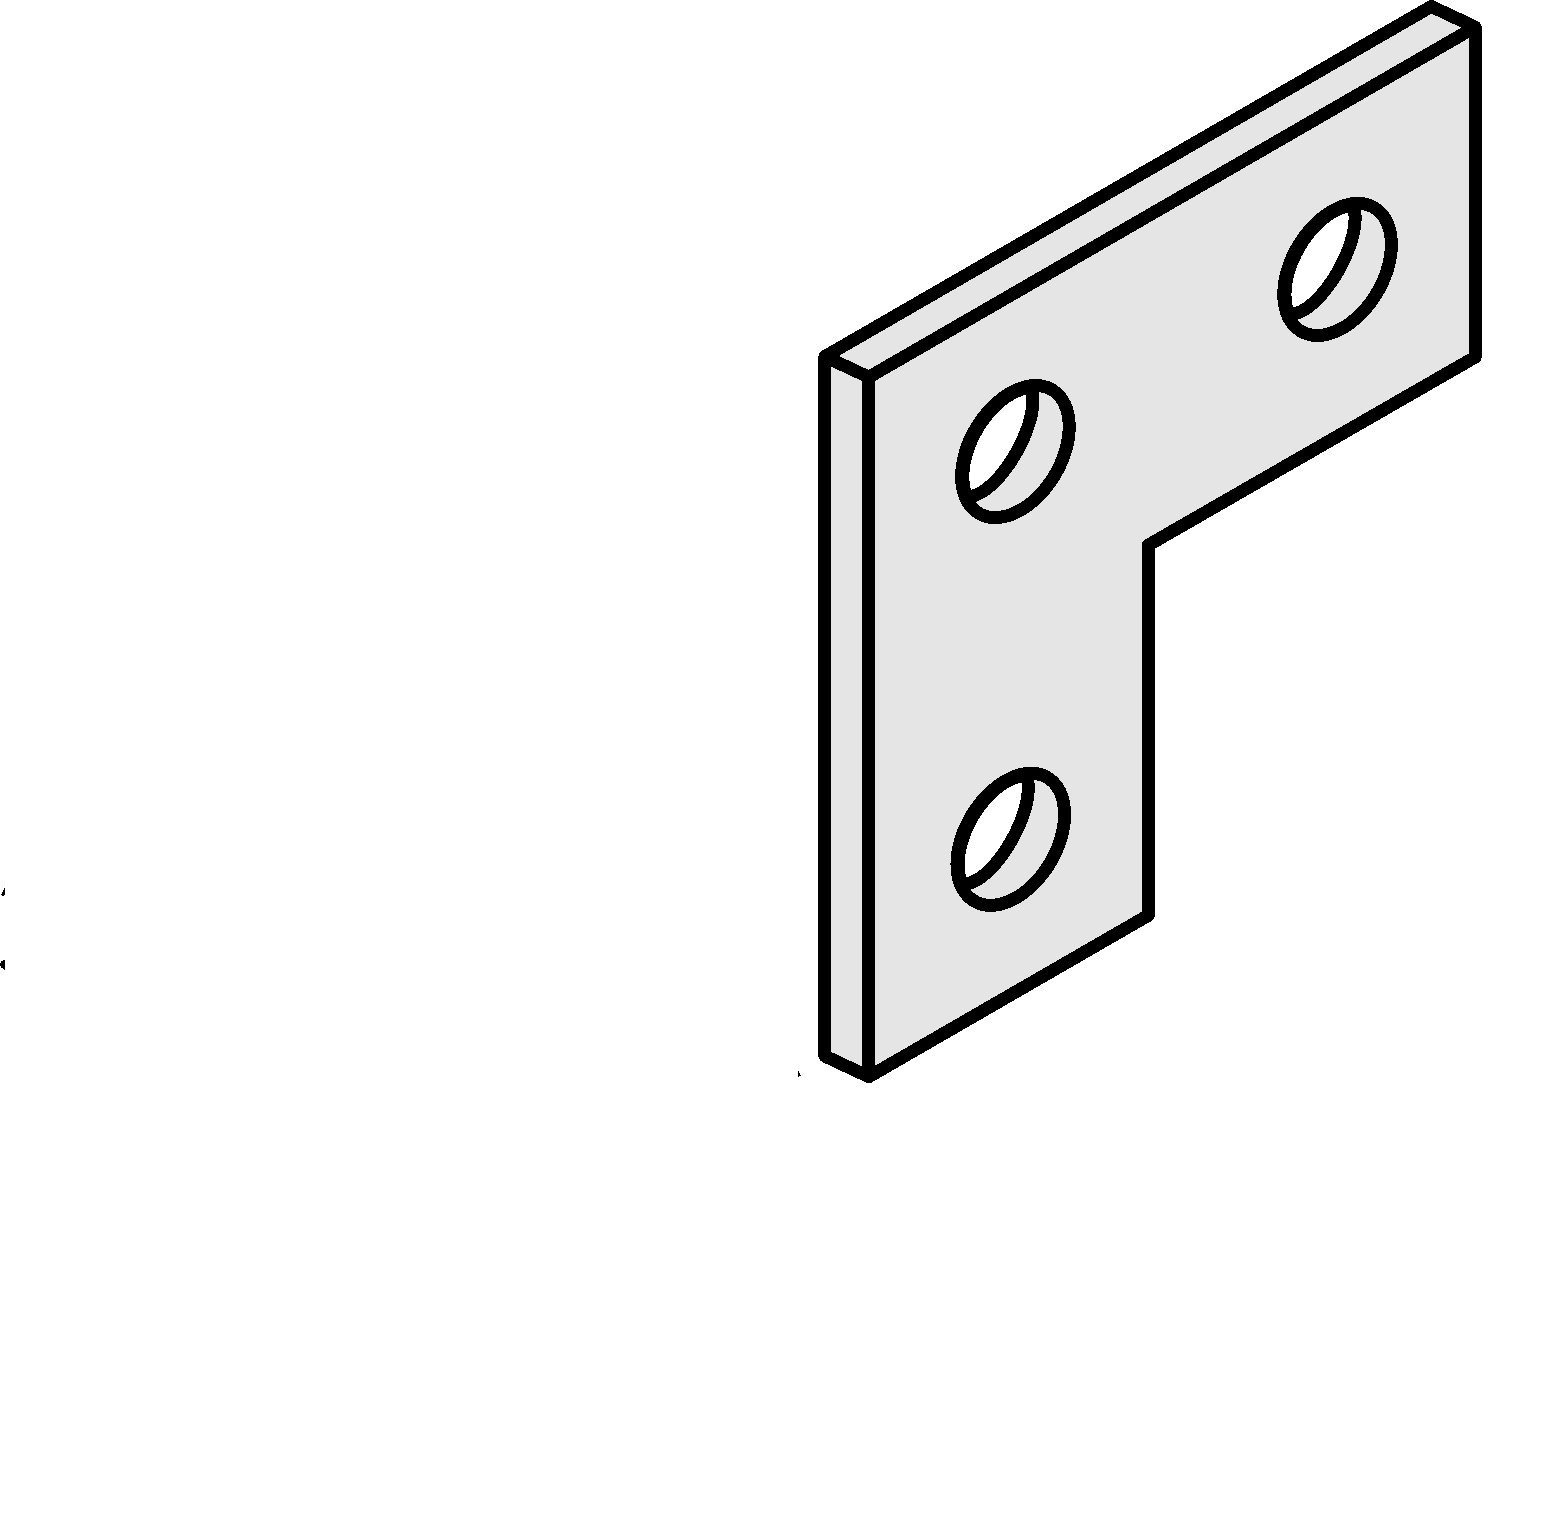 Versabar VF-1301 Flat 3 Hole ''L'' Connector for 1-5/8'' Channel Zinc Plated 5/BX